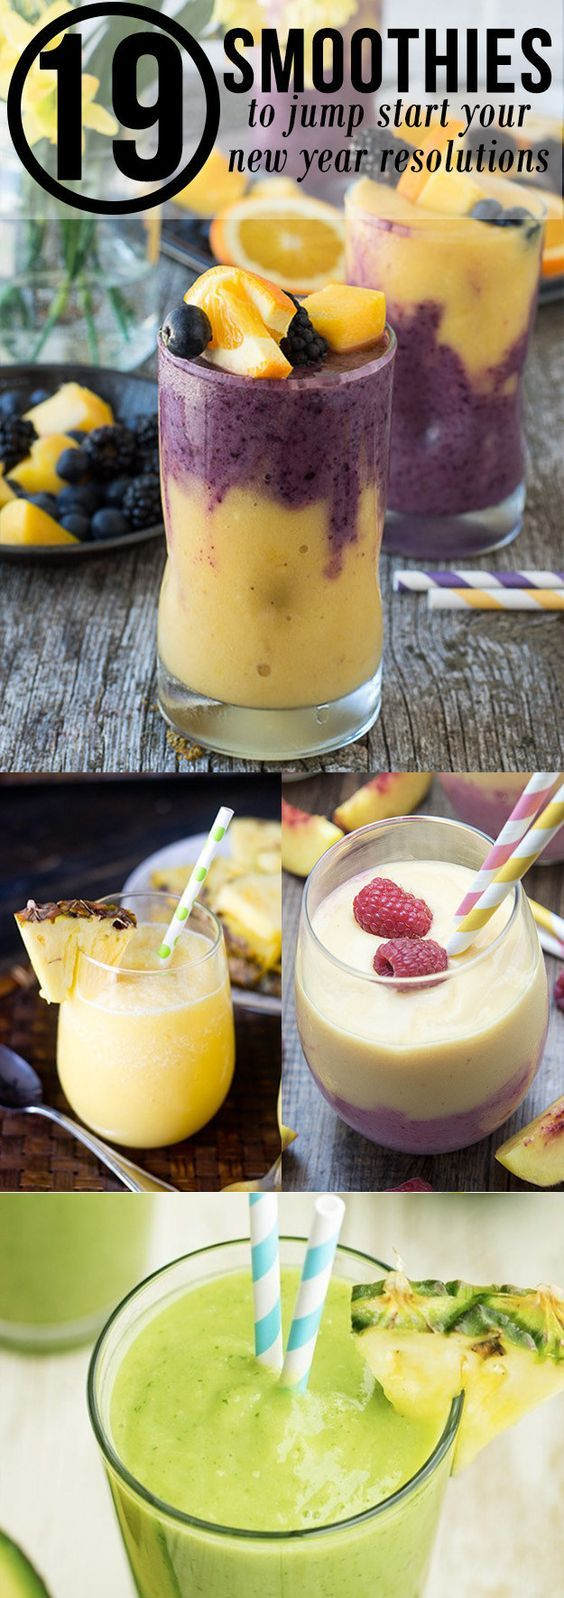 19 Smoothies To Jump Start Your New Years Resolutions - delicious and nutritious smoothies to fuel your body! Perfect to jump start your morning or for an afternoon snack!